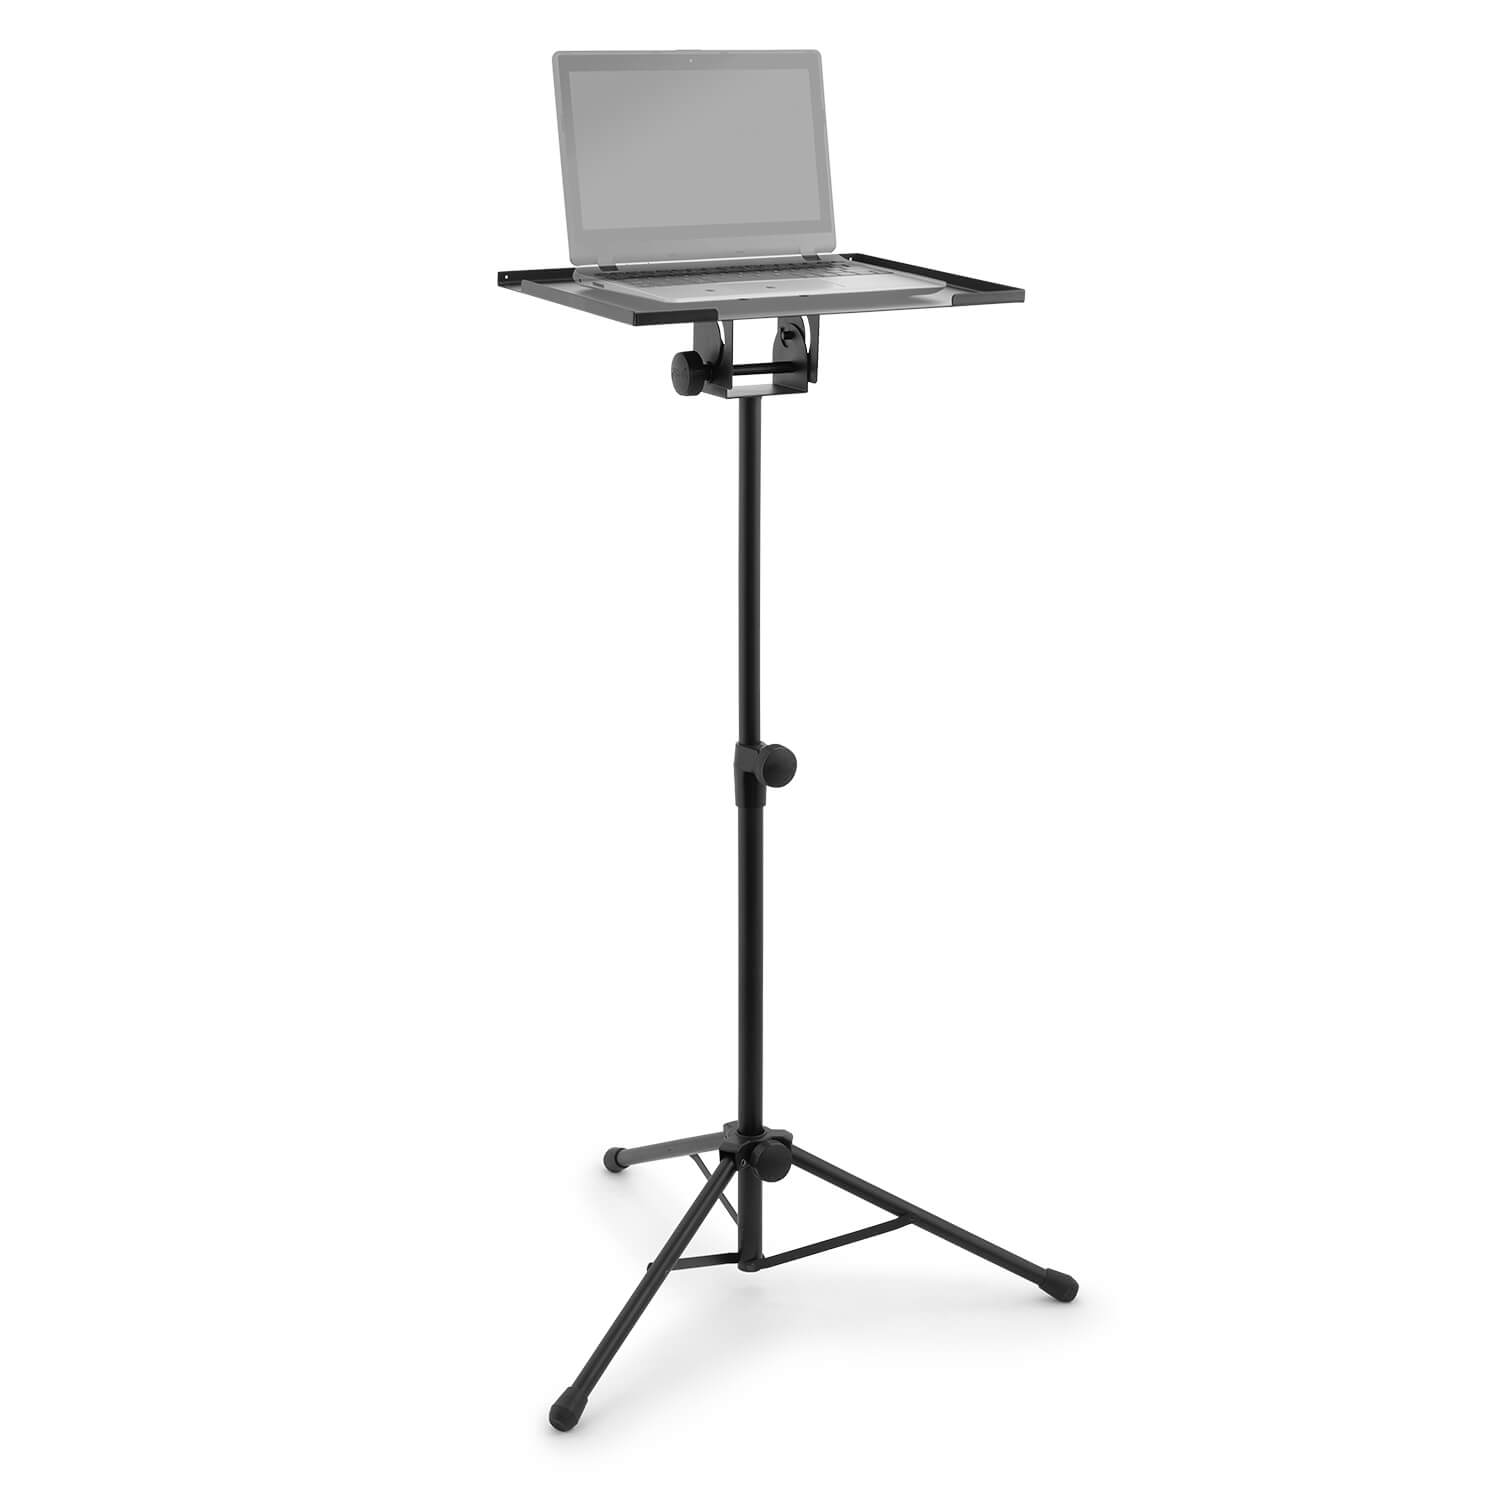 Projector / Laptop Stand   Portable Height Adjustable Tripod Stand